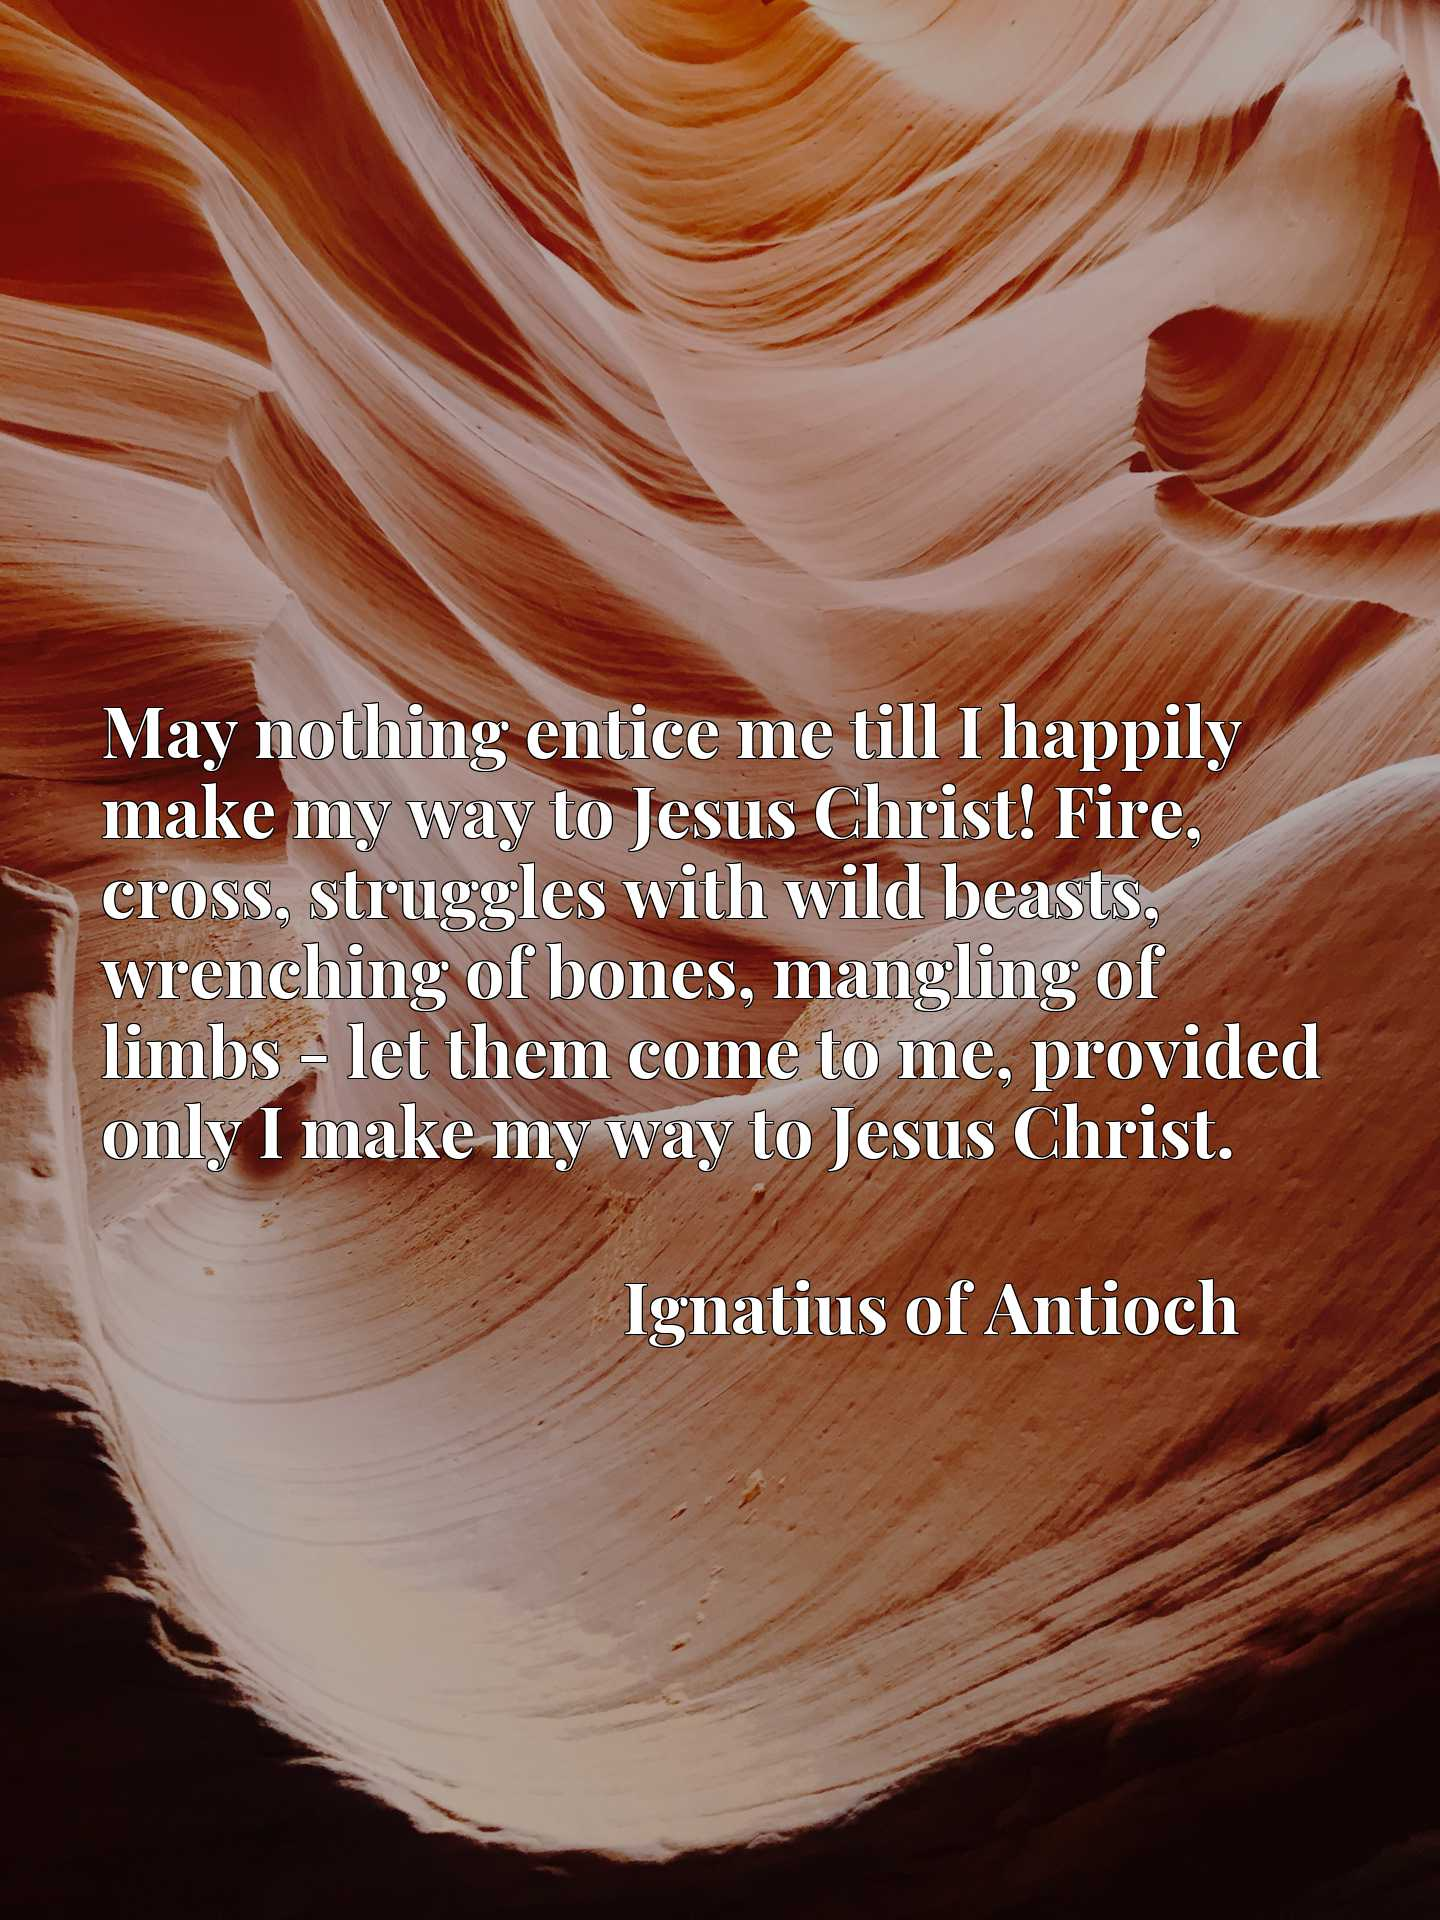 May nothing entice me till I happily make my way to Jesus Christ! Fire, cross, struggles with wild beasts, wrenching of bones, mangling of limbs - let them come to me, provided only I make my way to Jesus Christ.